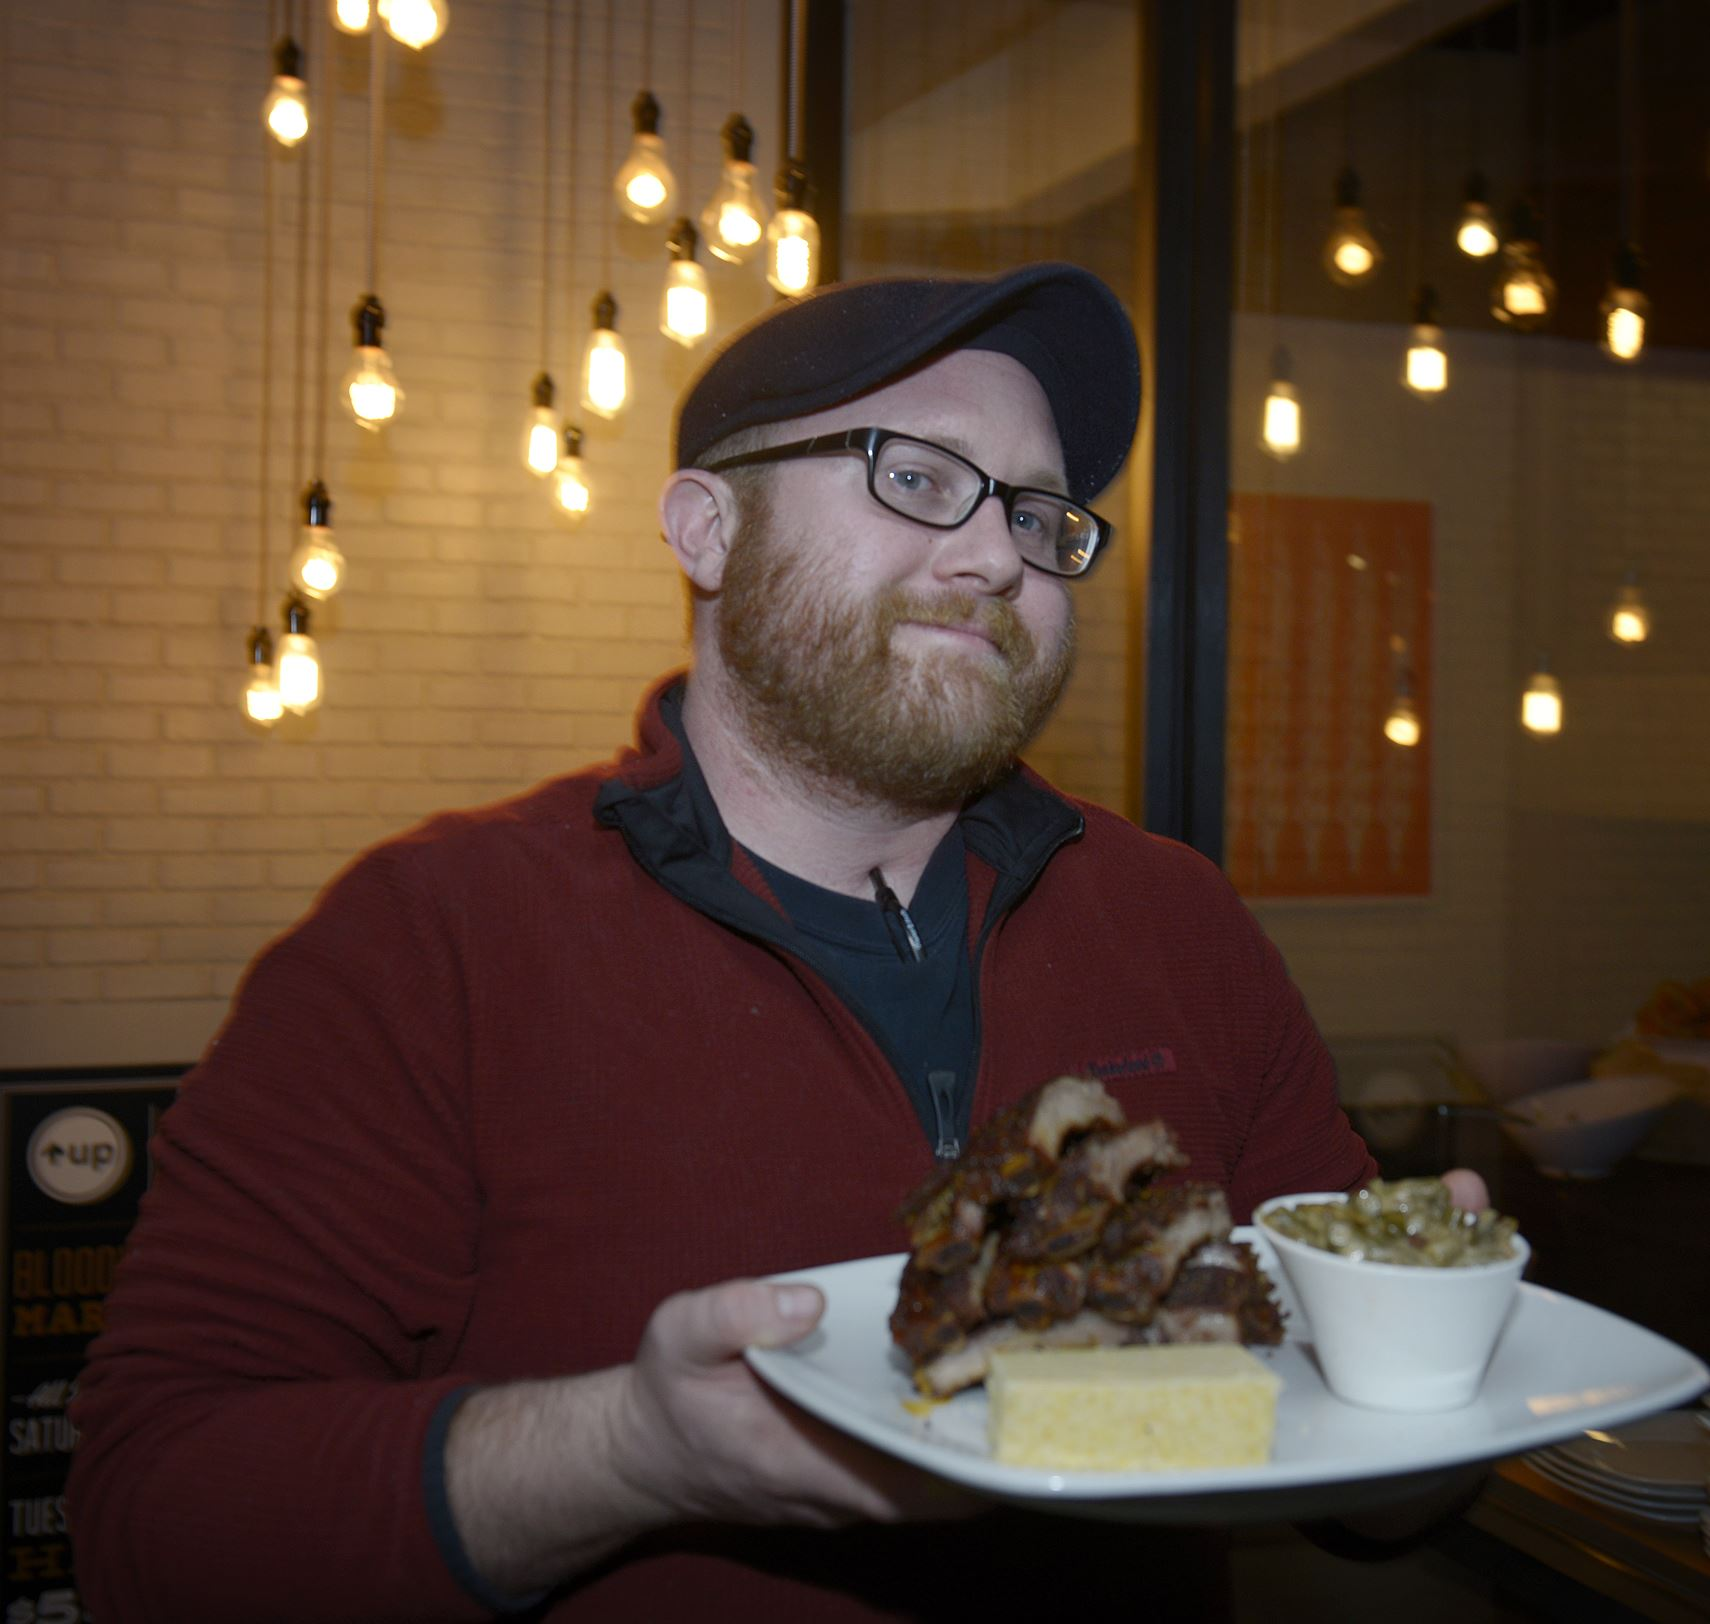 20131208jrUpMag2-1 Jared Lordon, 33, is owner and operator of Allegheny City Smokehouse.